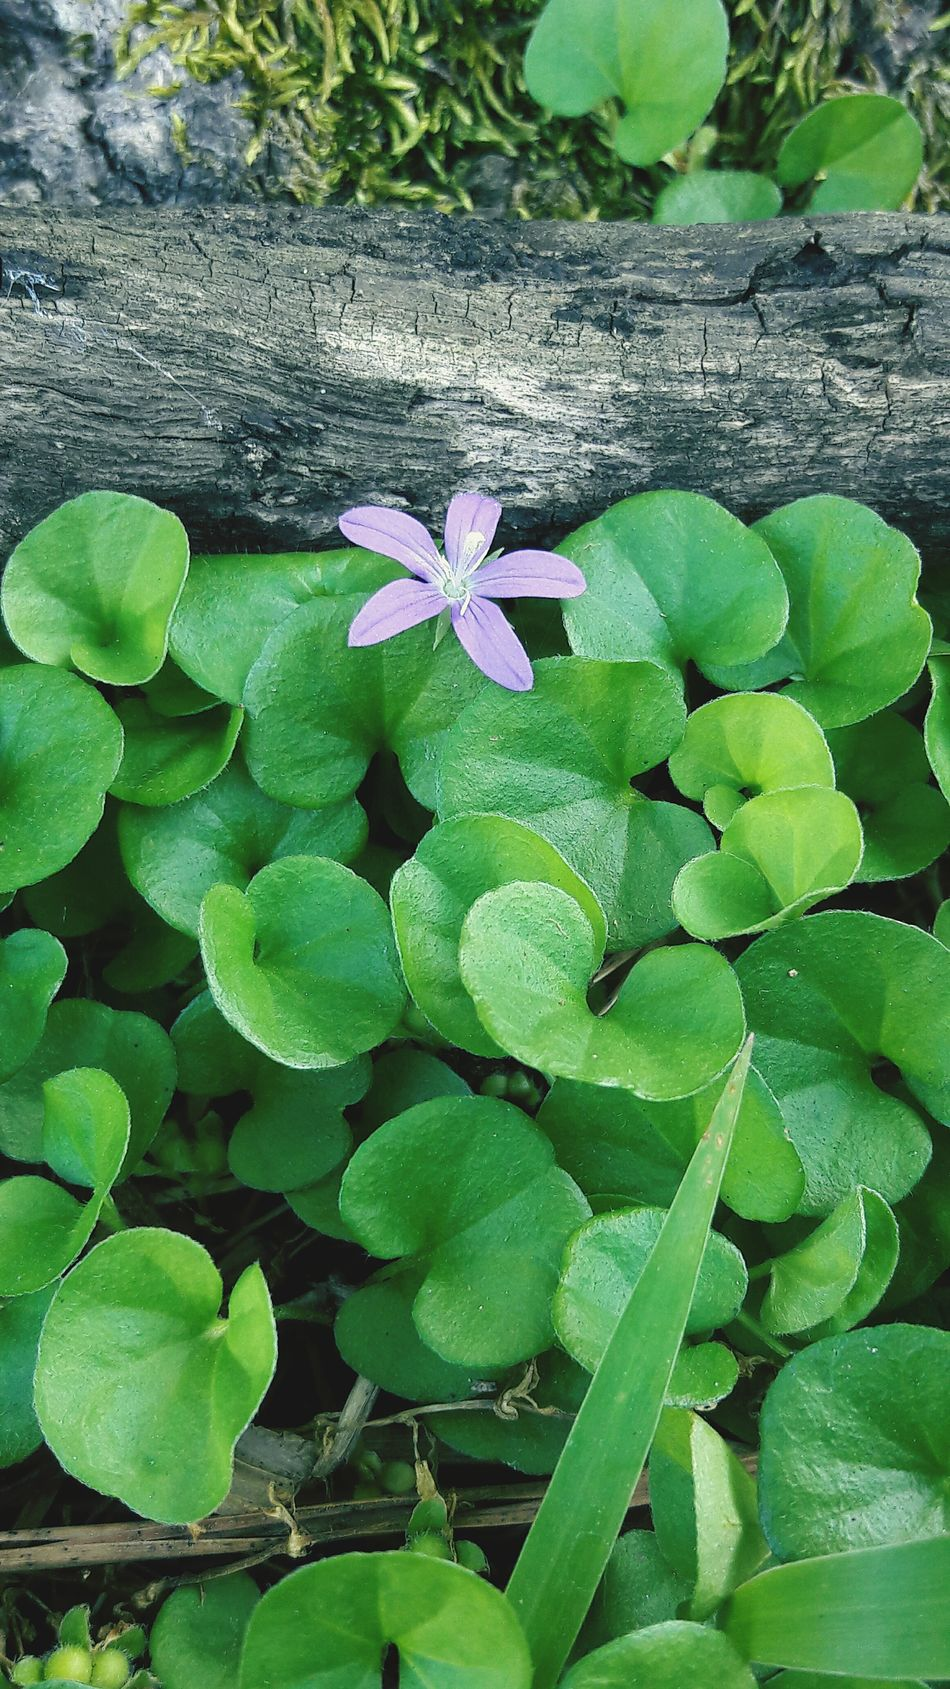 Good morning from a cute little purple flower 💜 Nature Growth Plant Green Color Leaf Beauty In Nature High Angle View Freshness Flower Fragility No People Outdoors Close-up Day Flower Head Popular Photos Purpleflower Tinyflowers Tiny